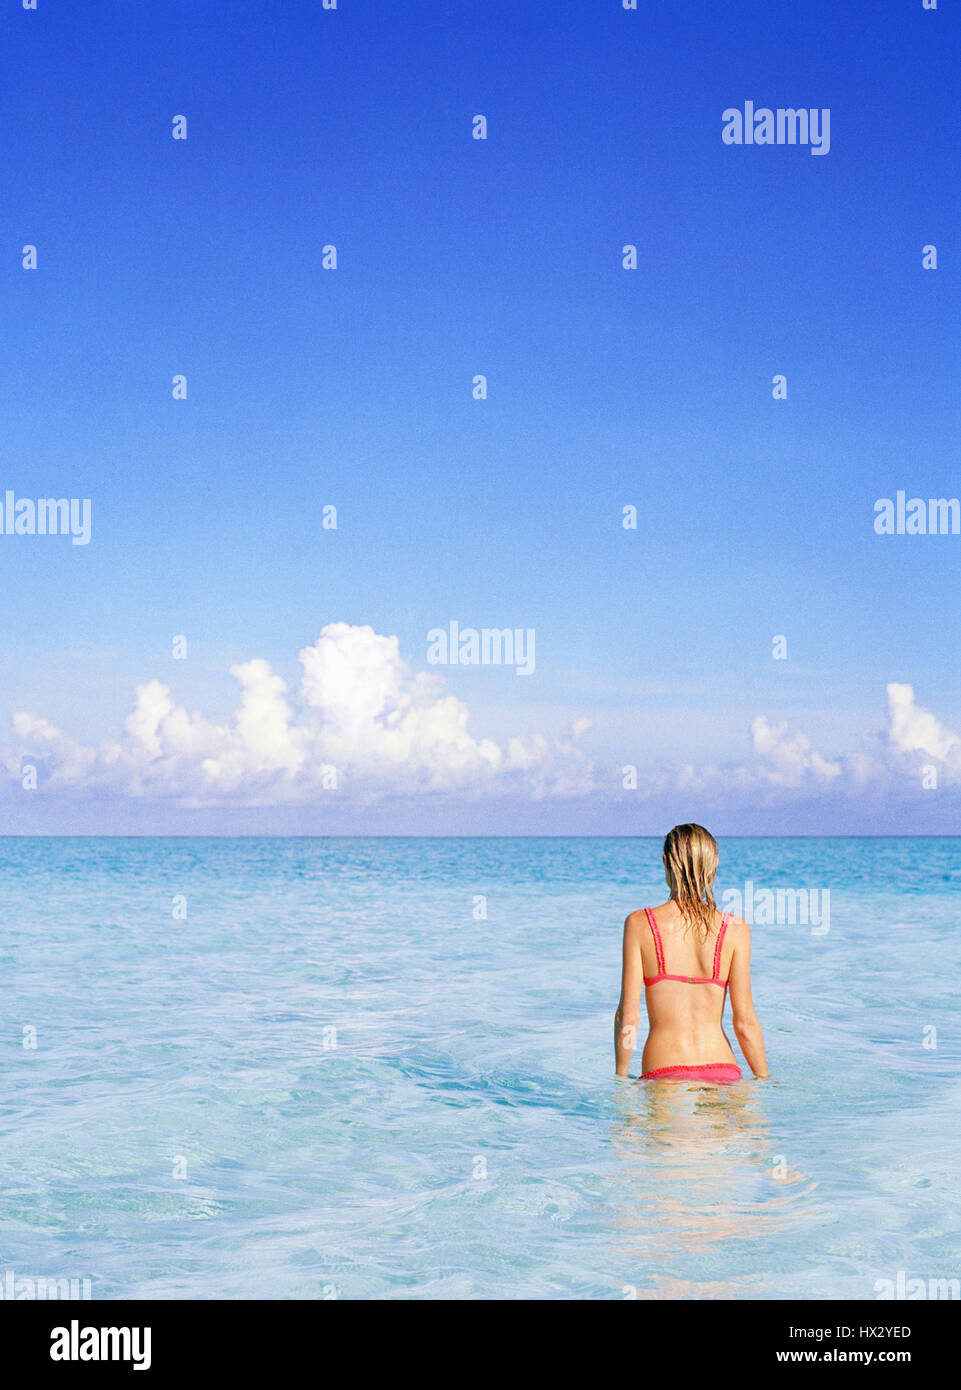 Back view of woman in ocean, Turks and Caicos - Stock Image